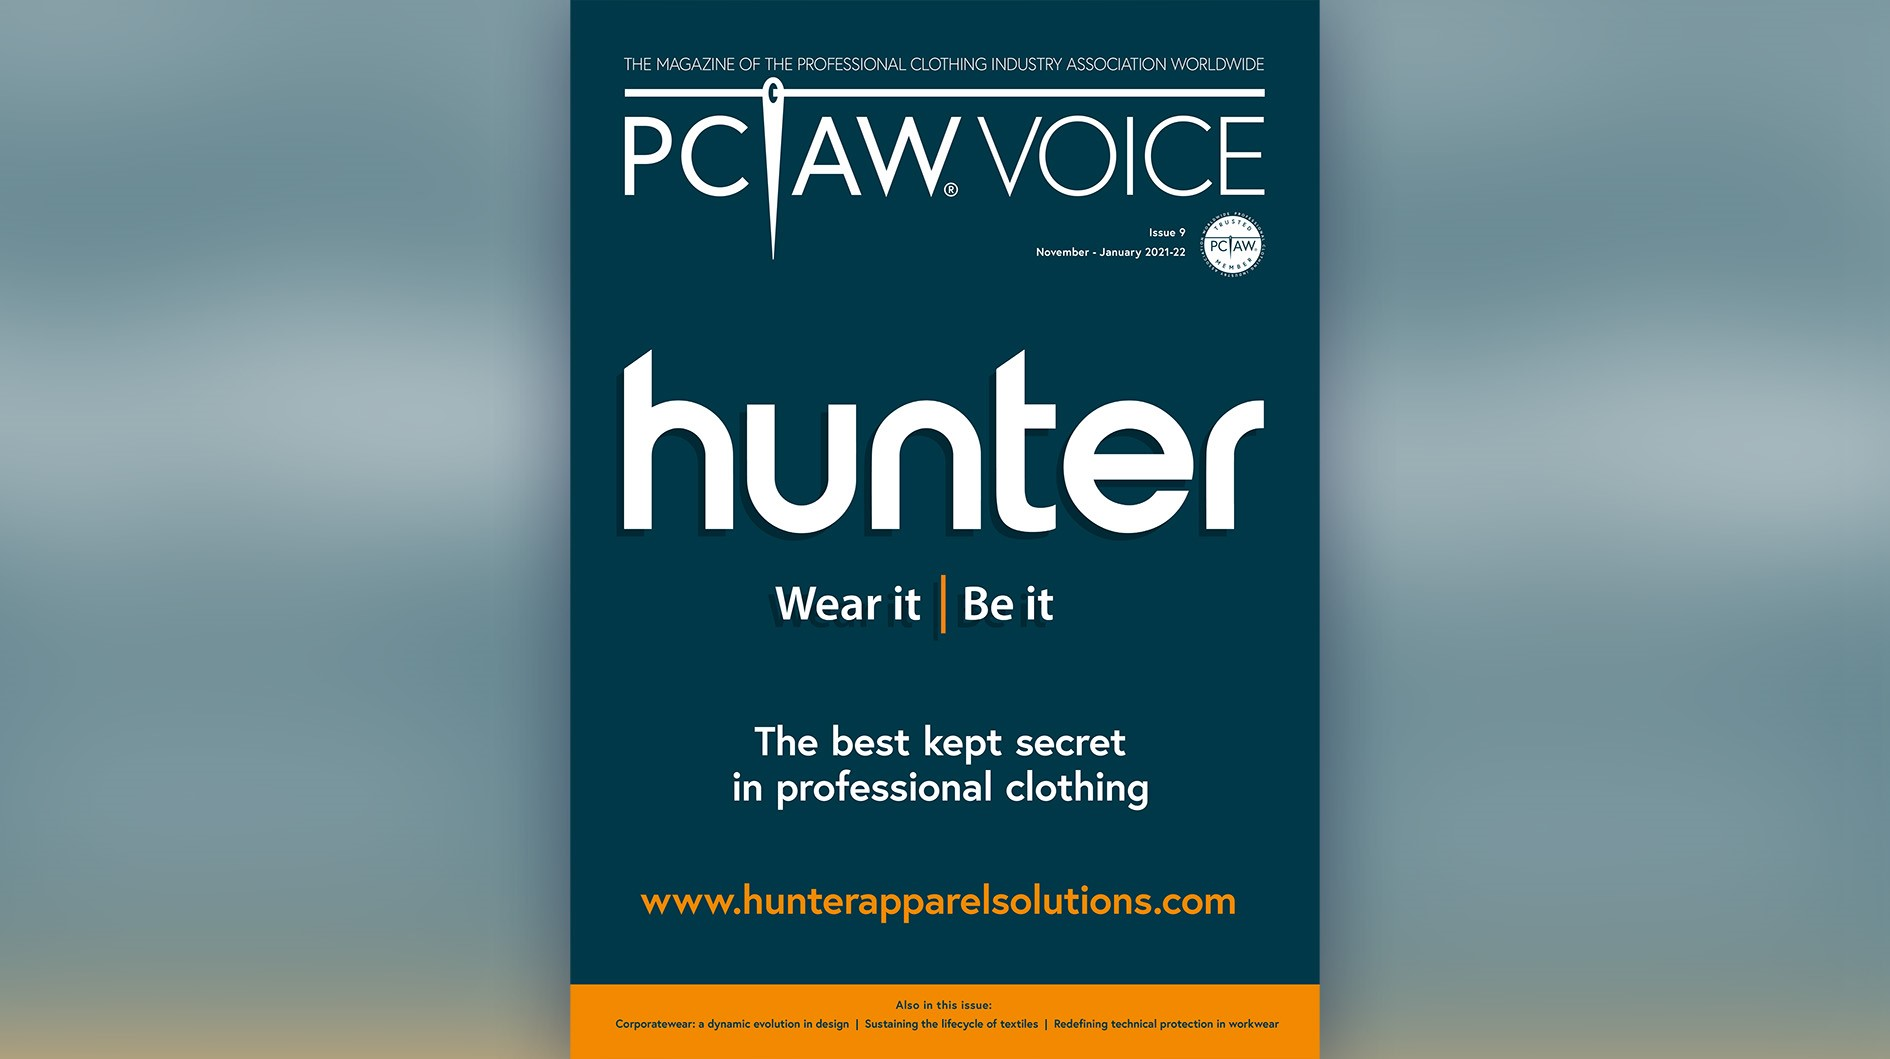 The latest November-January edition of PCIAW®VOICE Magazine is out now!